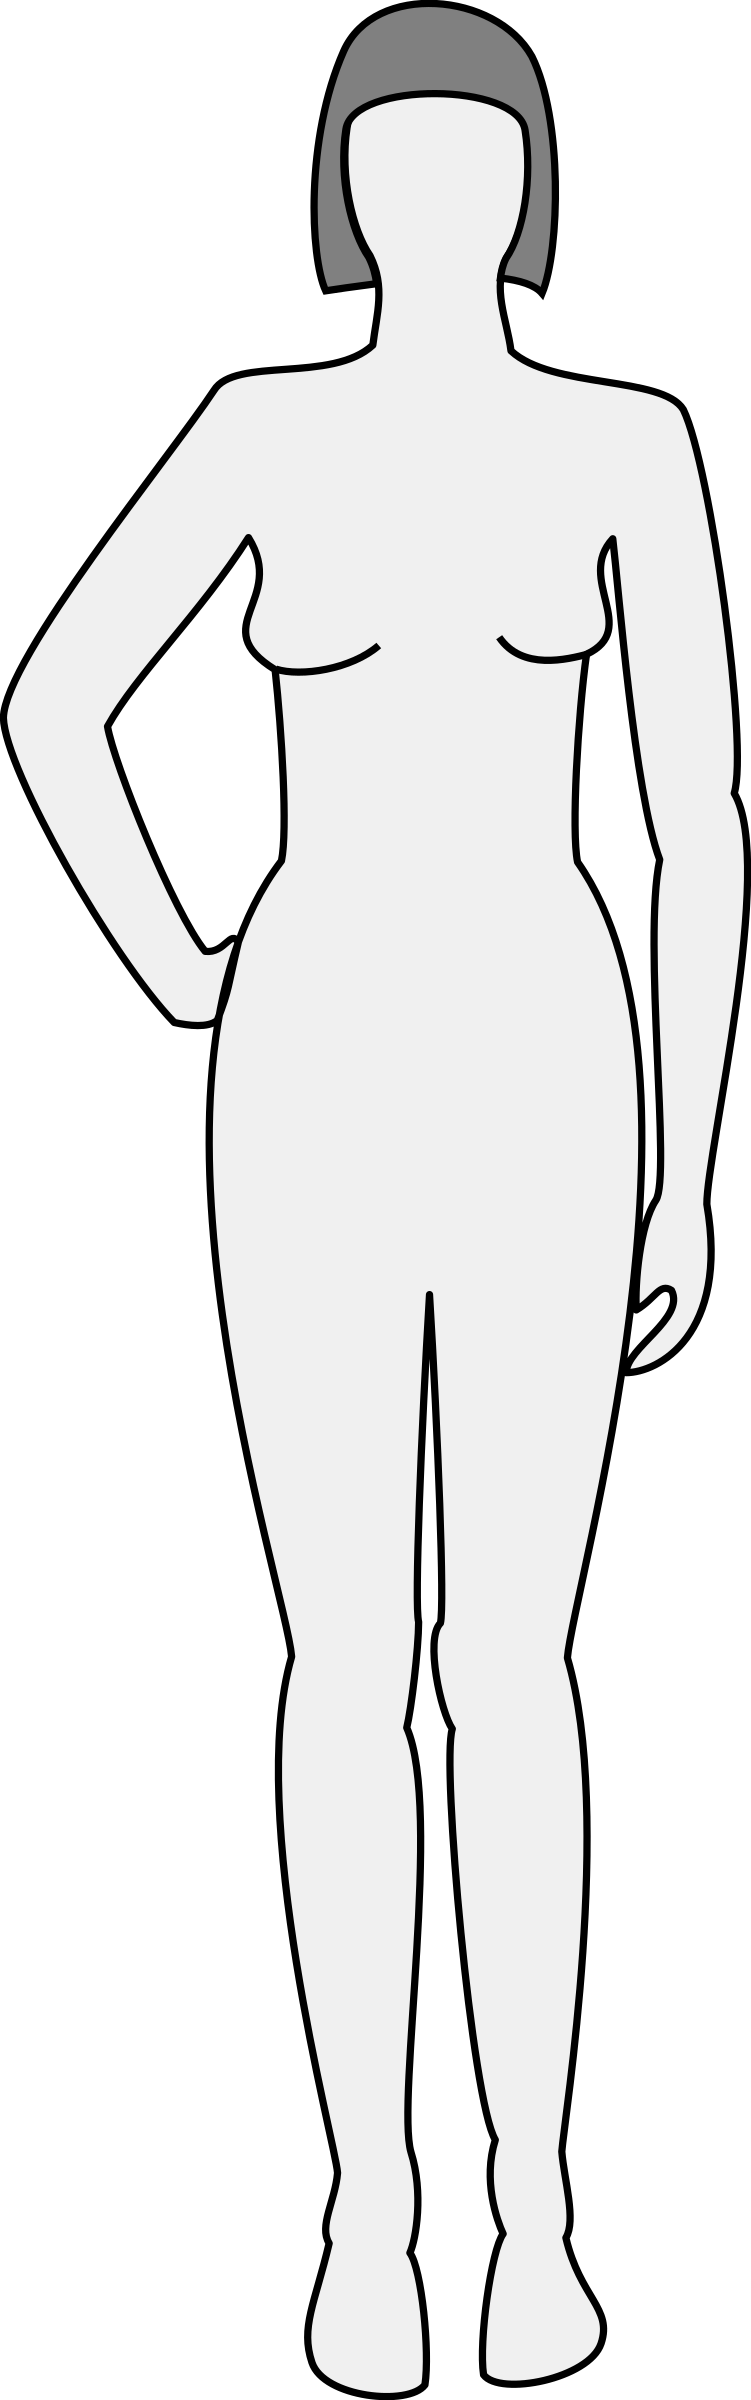 Female body silhouette - front by nicubunu